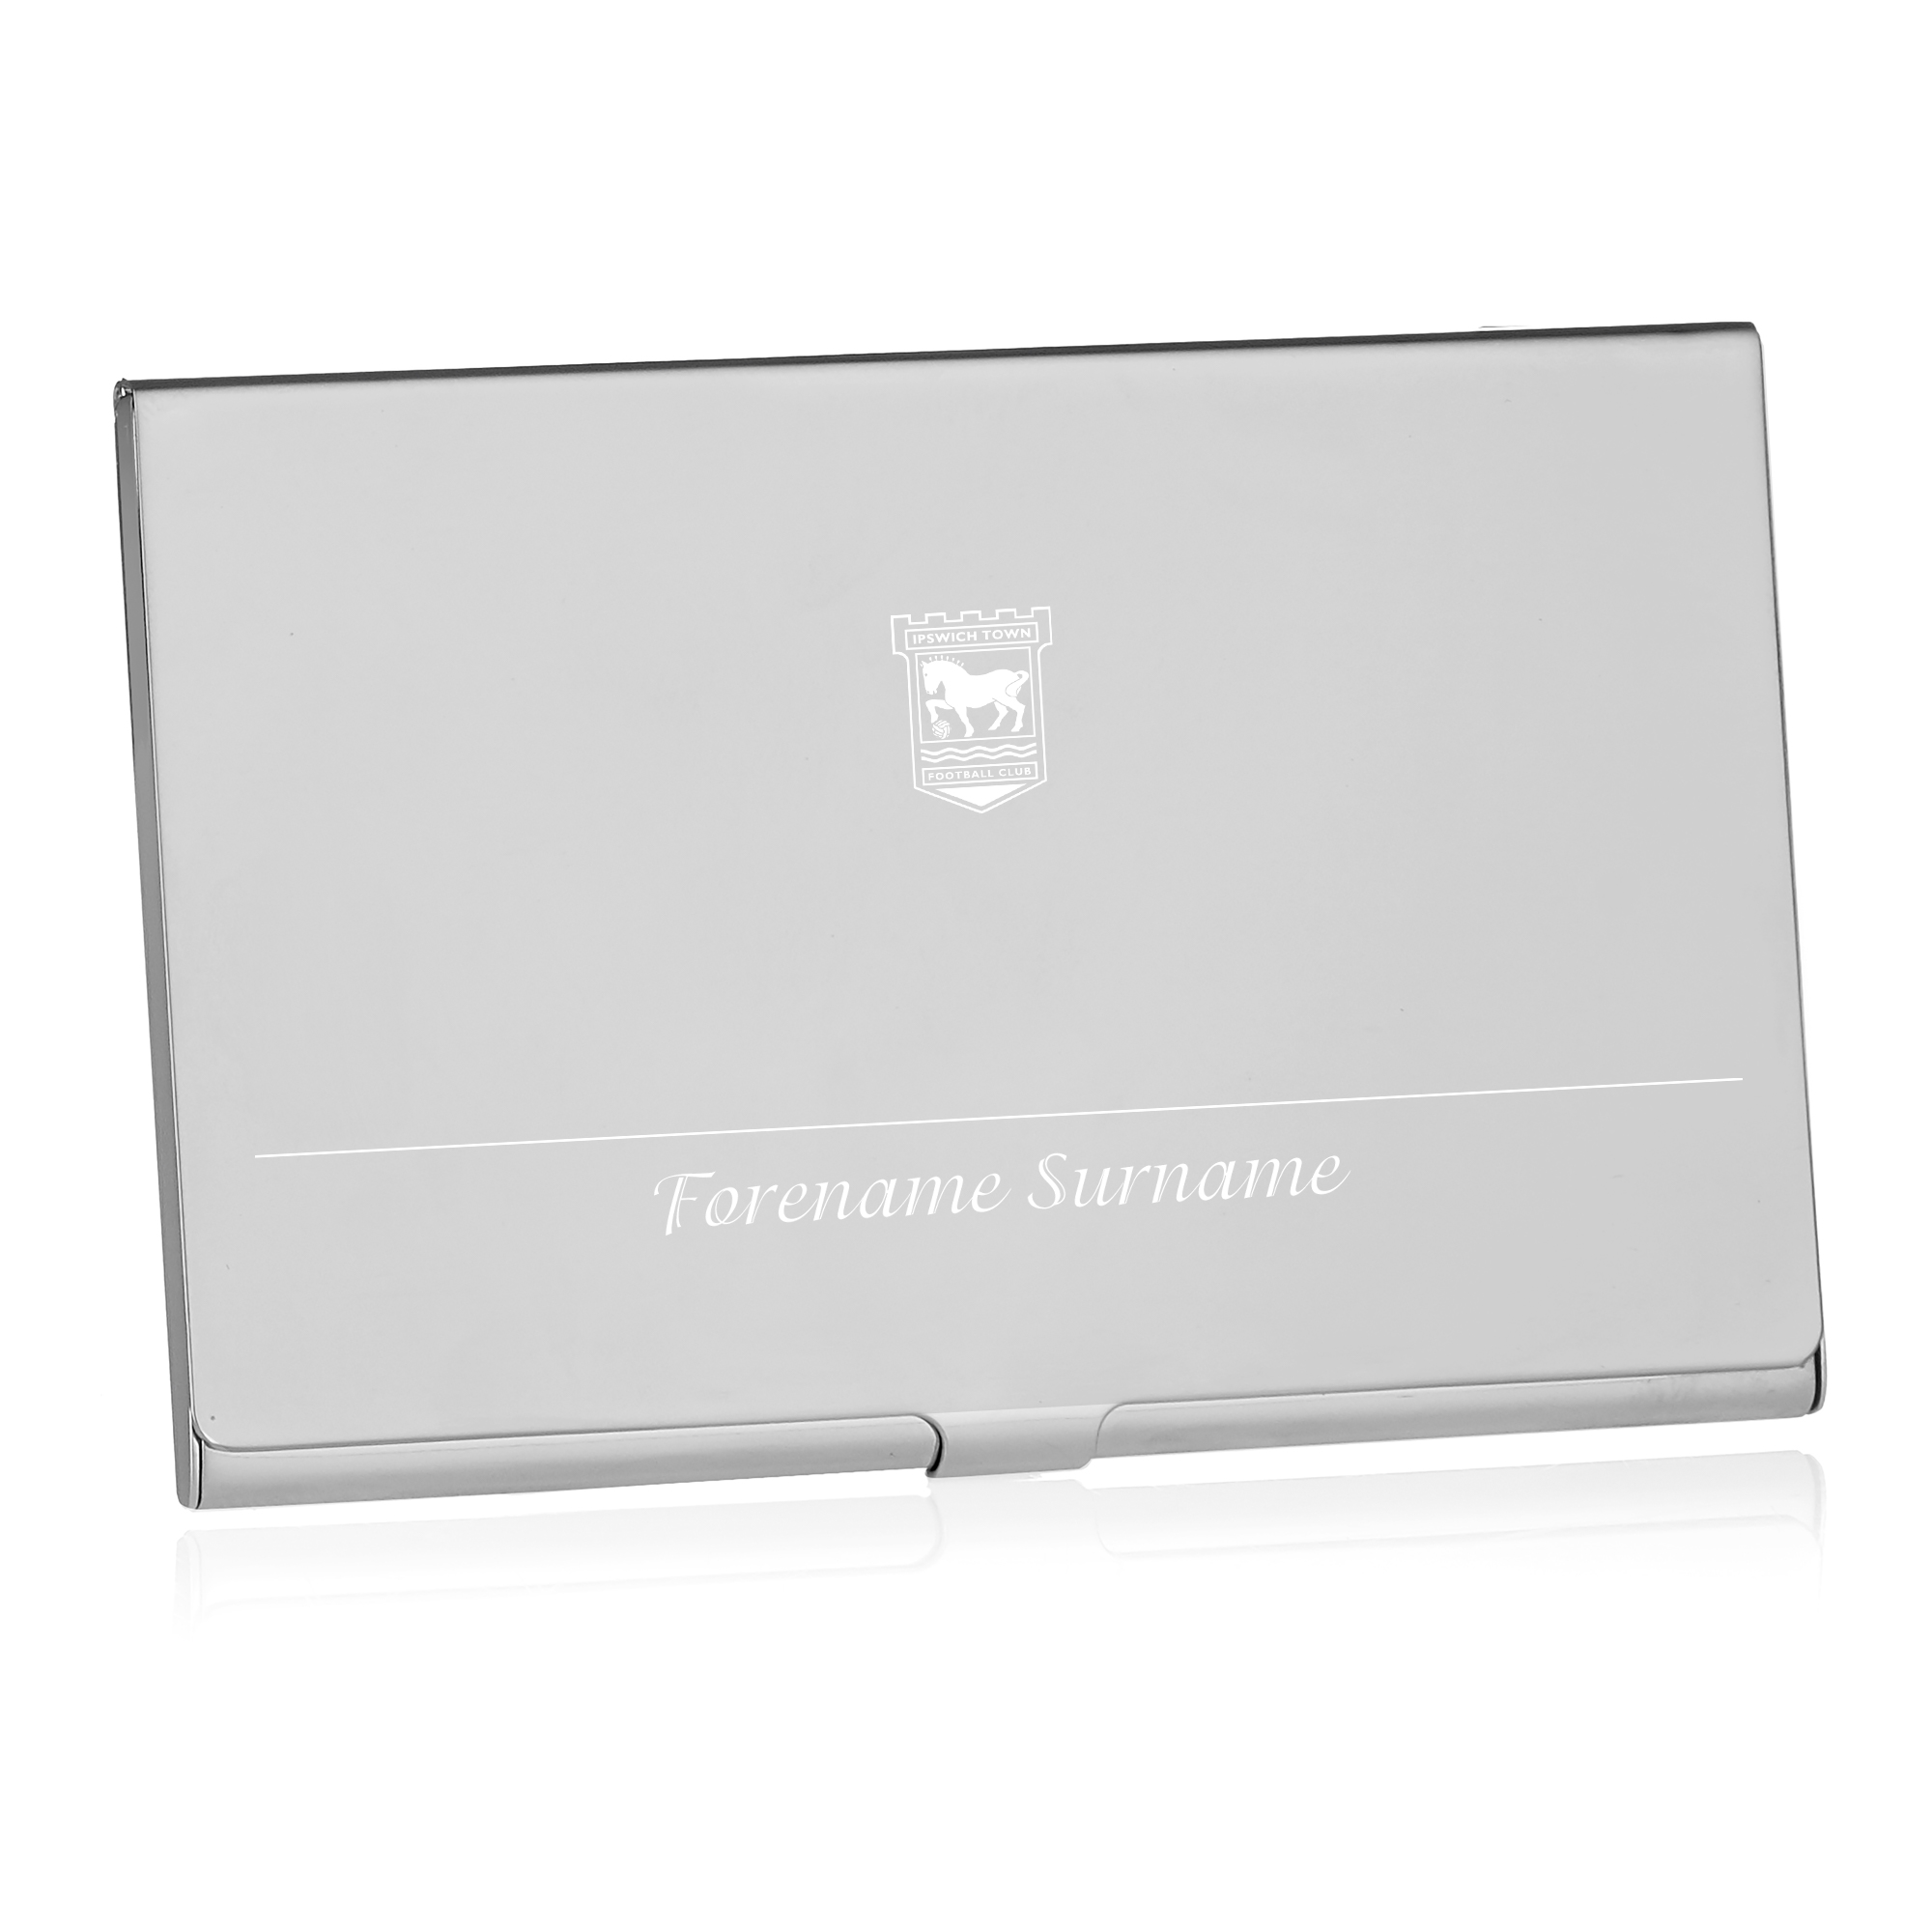 Ipswich Town FC Executive Business Card Holder